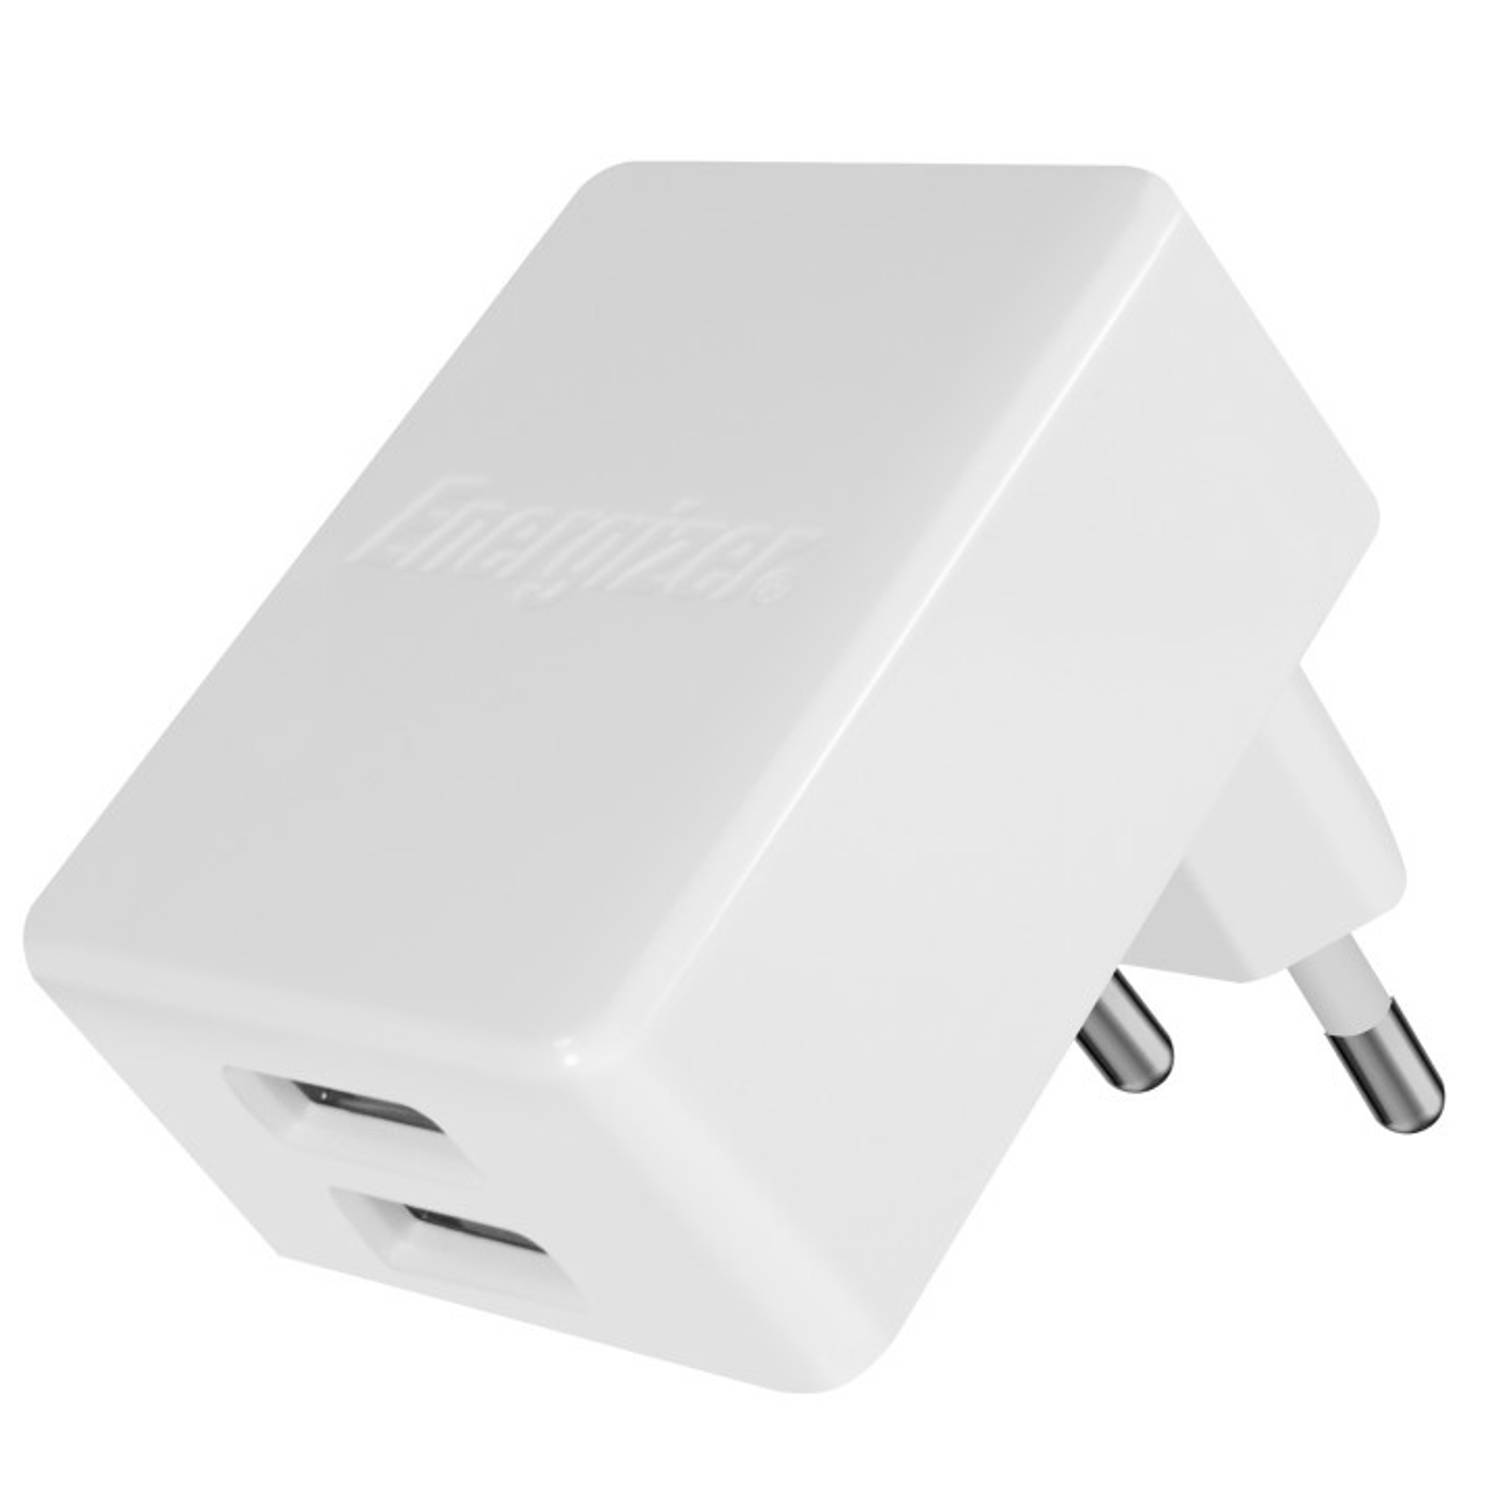 Energizer oplader dubbele USB-poort 4.8A voor iPhone-iPad wit